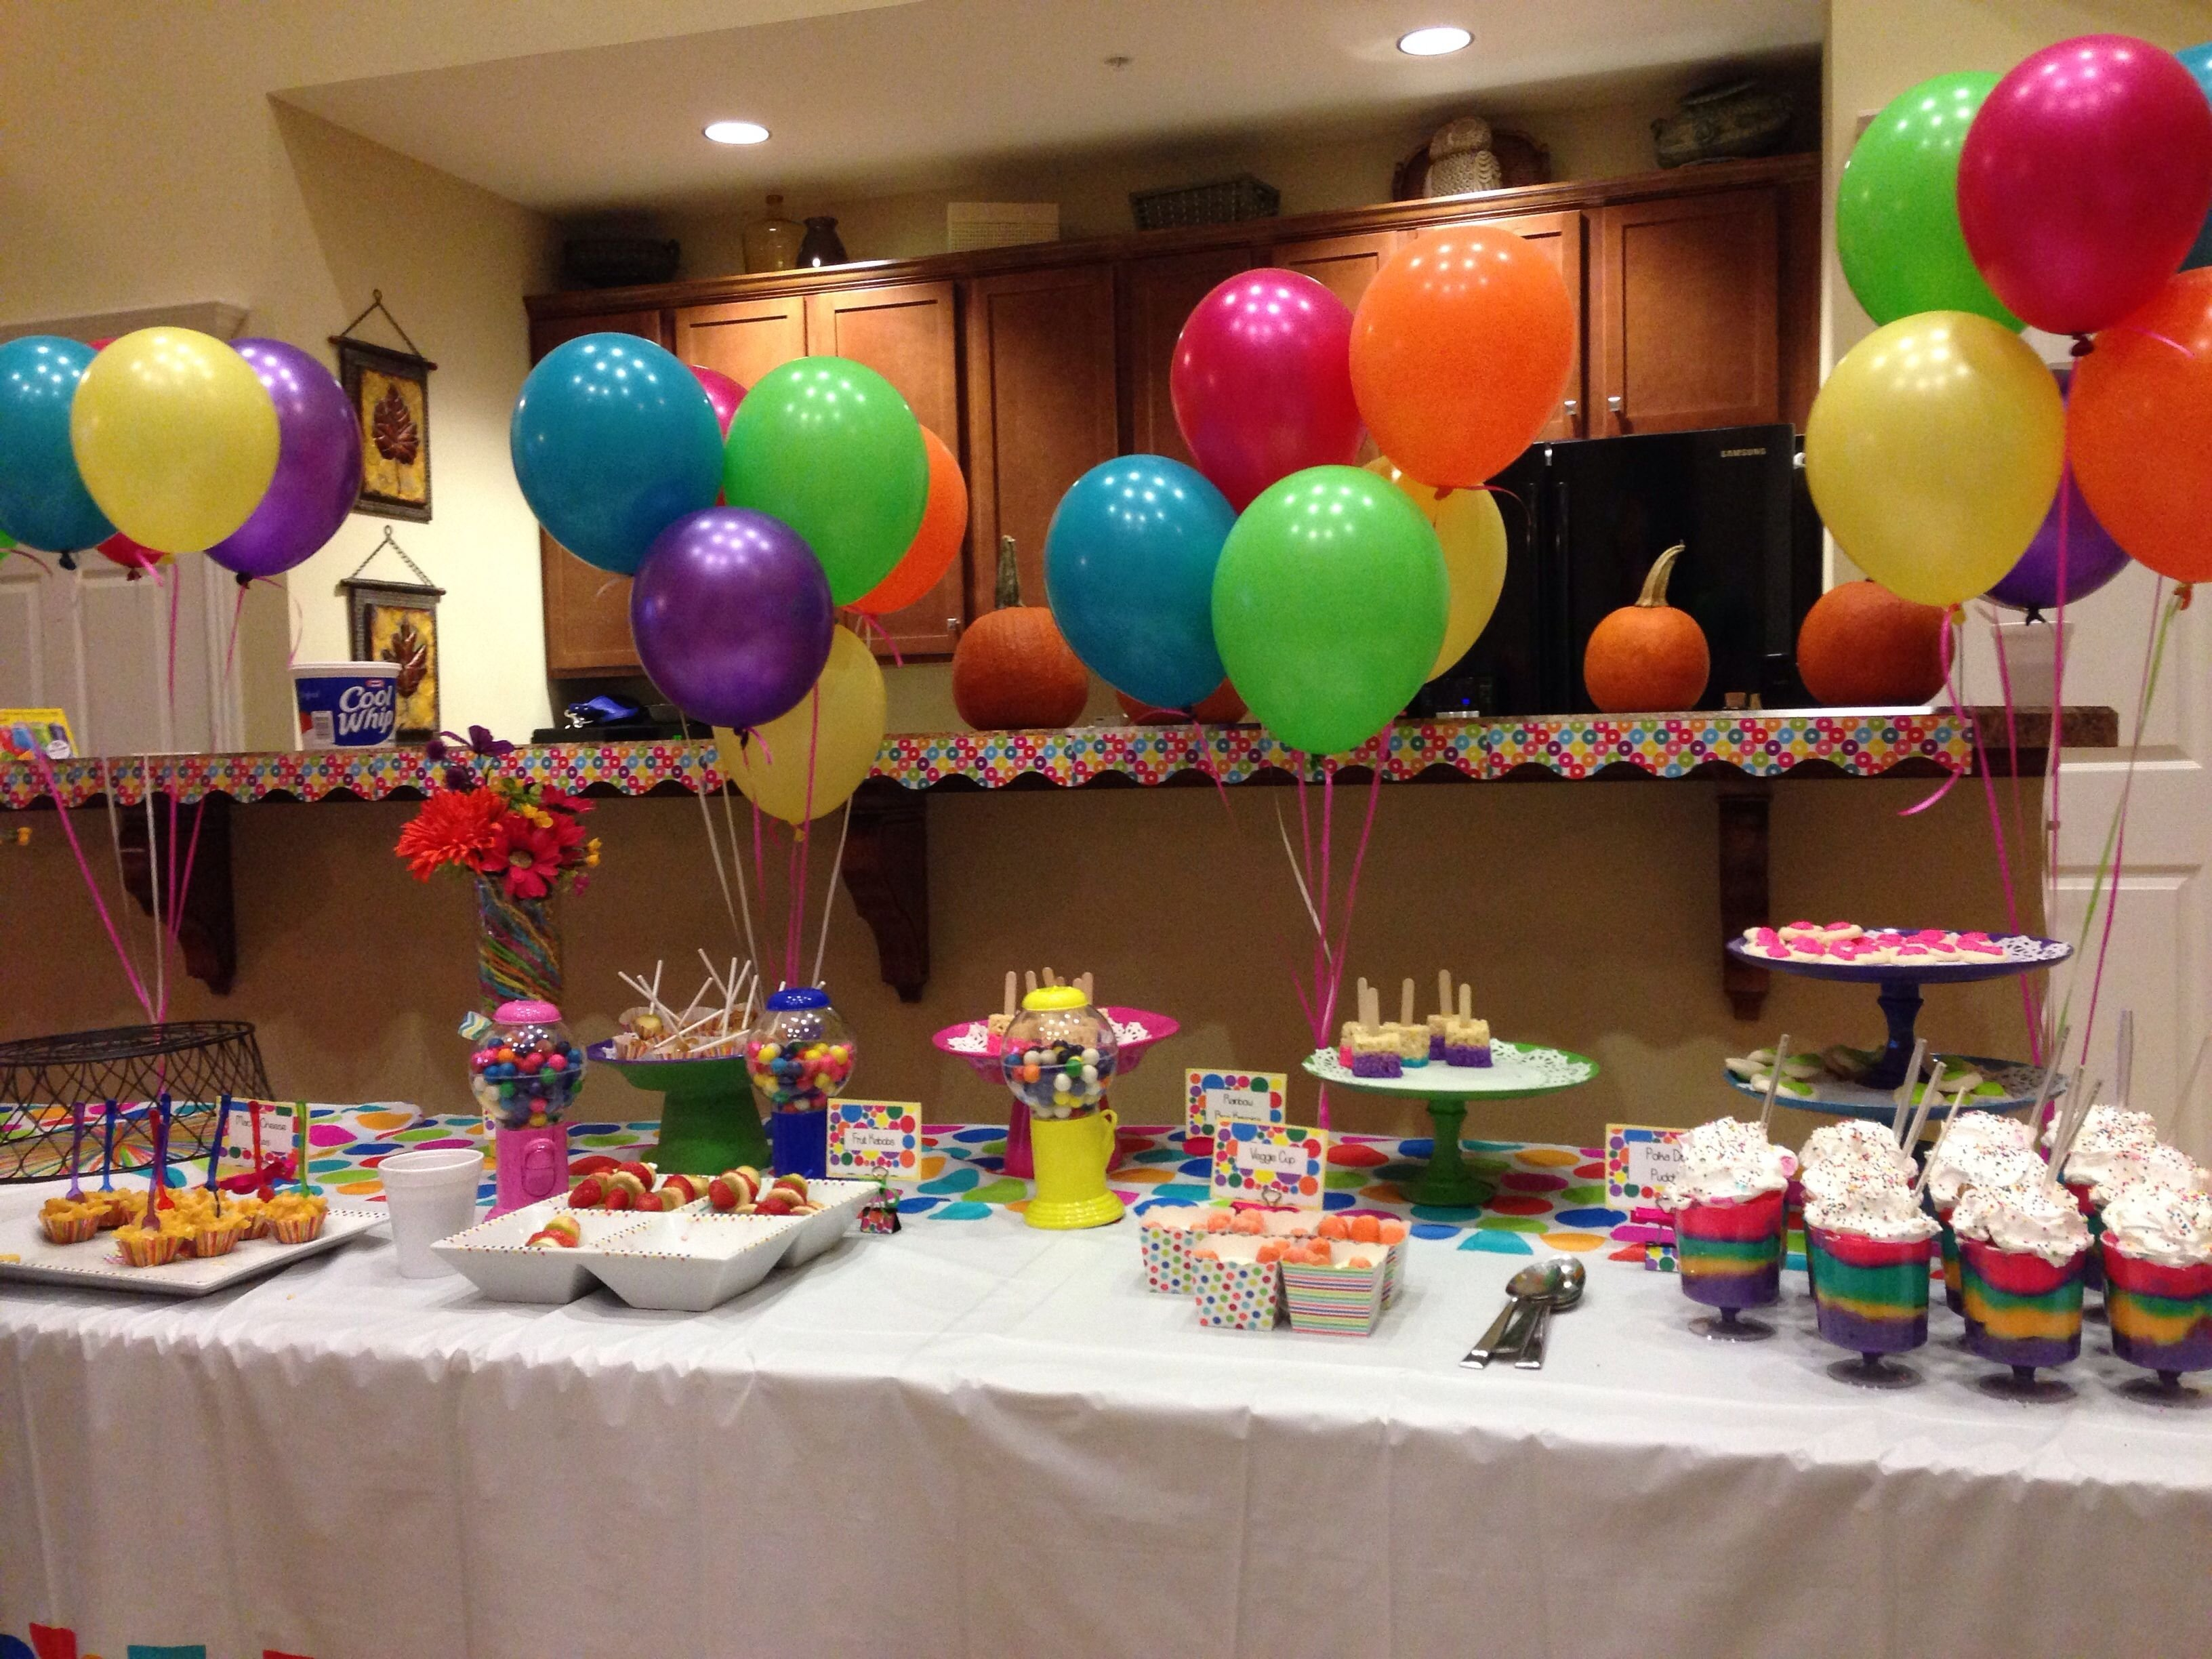 10 Stunning 4 Year Old Party Ideas 4 year old birthday party ideas party ideas for kids pinterest 2